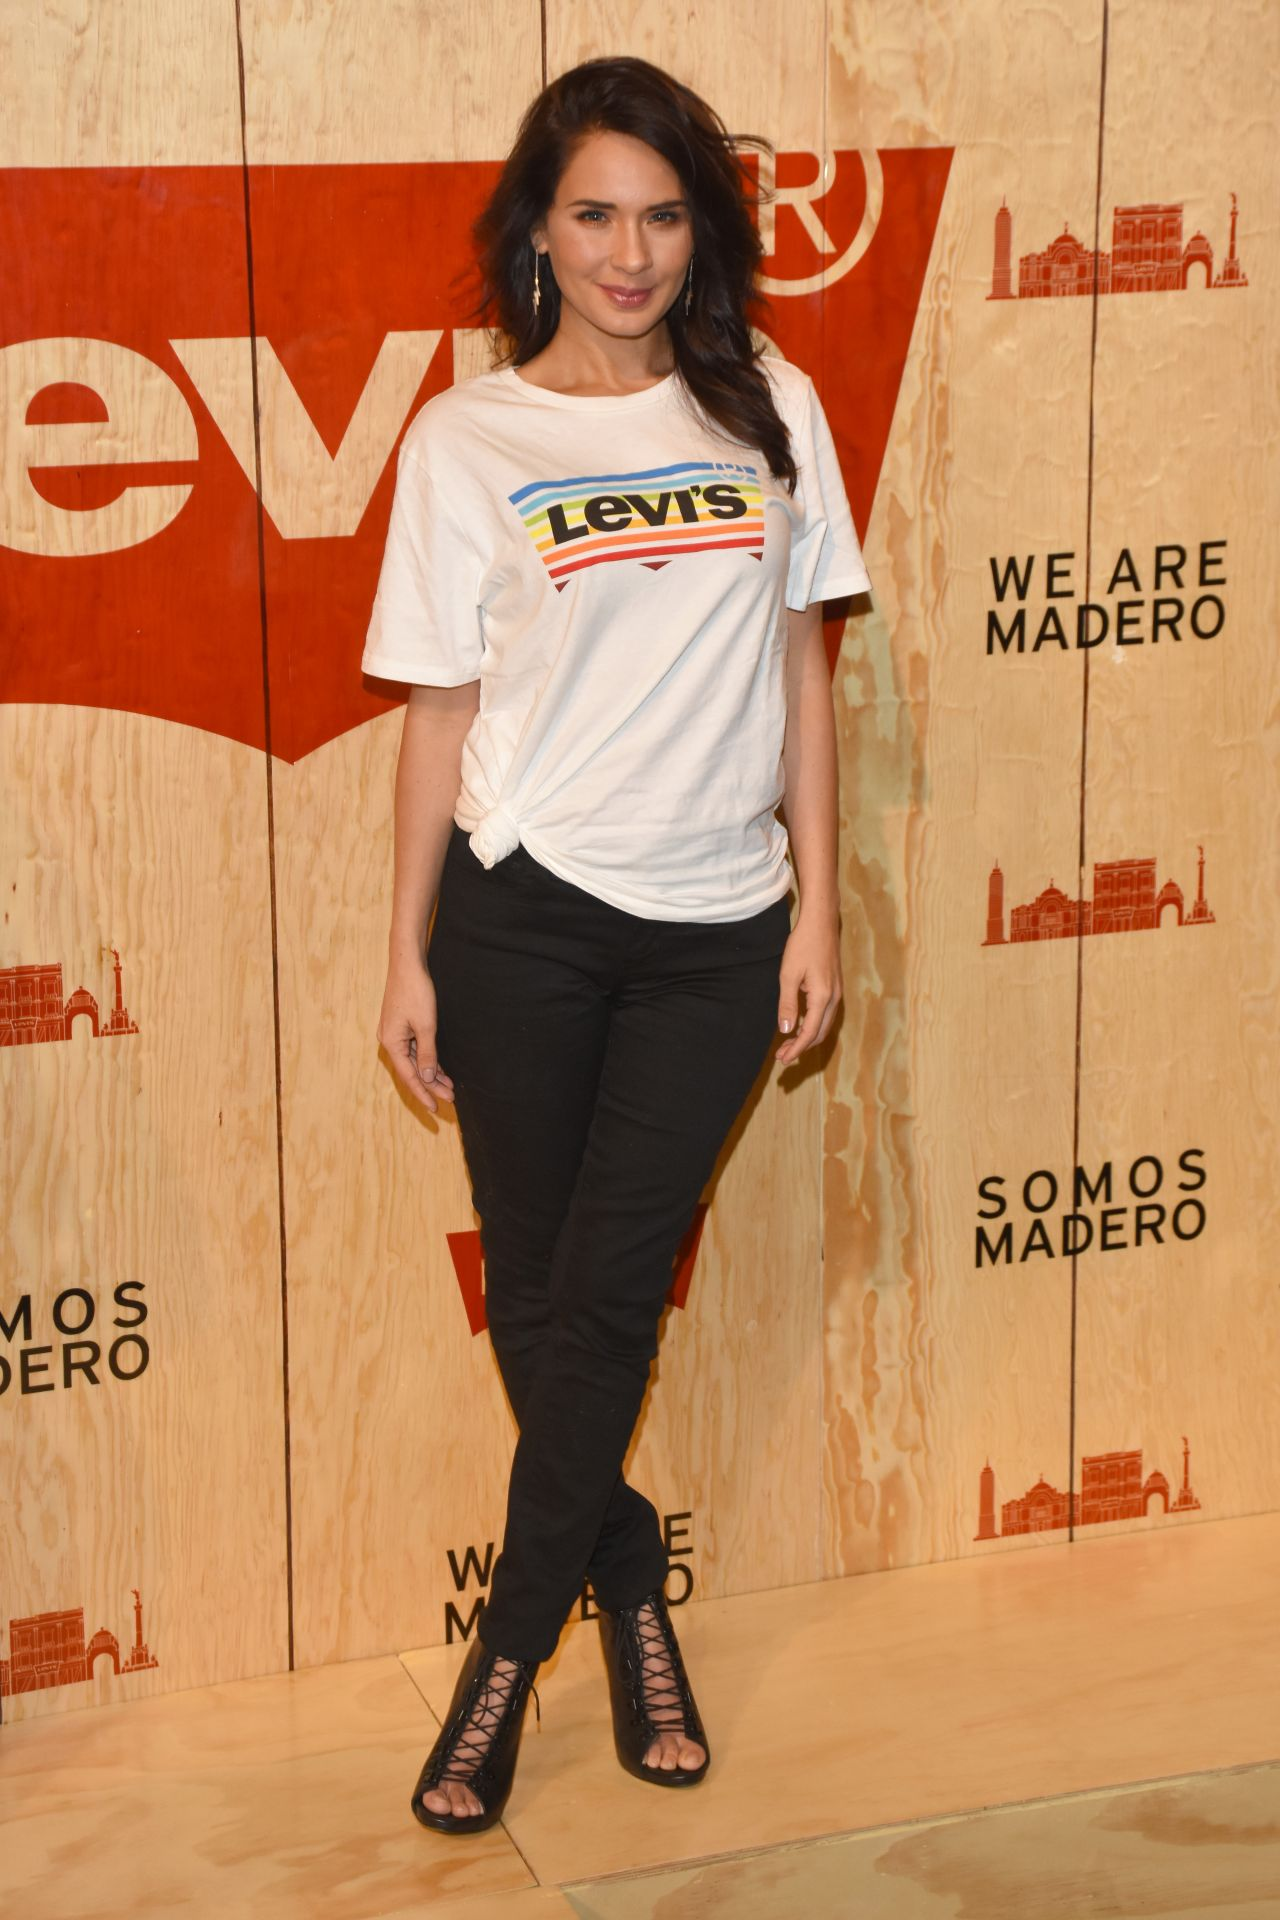 http://celebmafia.com/wp-content/uploads/2018/03/adriana-louvier-levi-s-store-opening-in-mexico-city-0.jpg